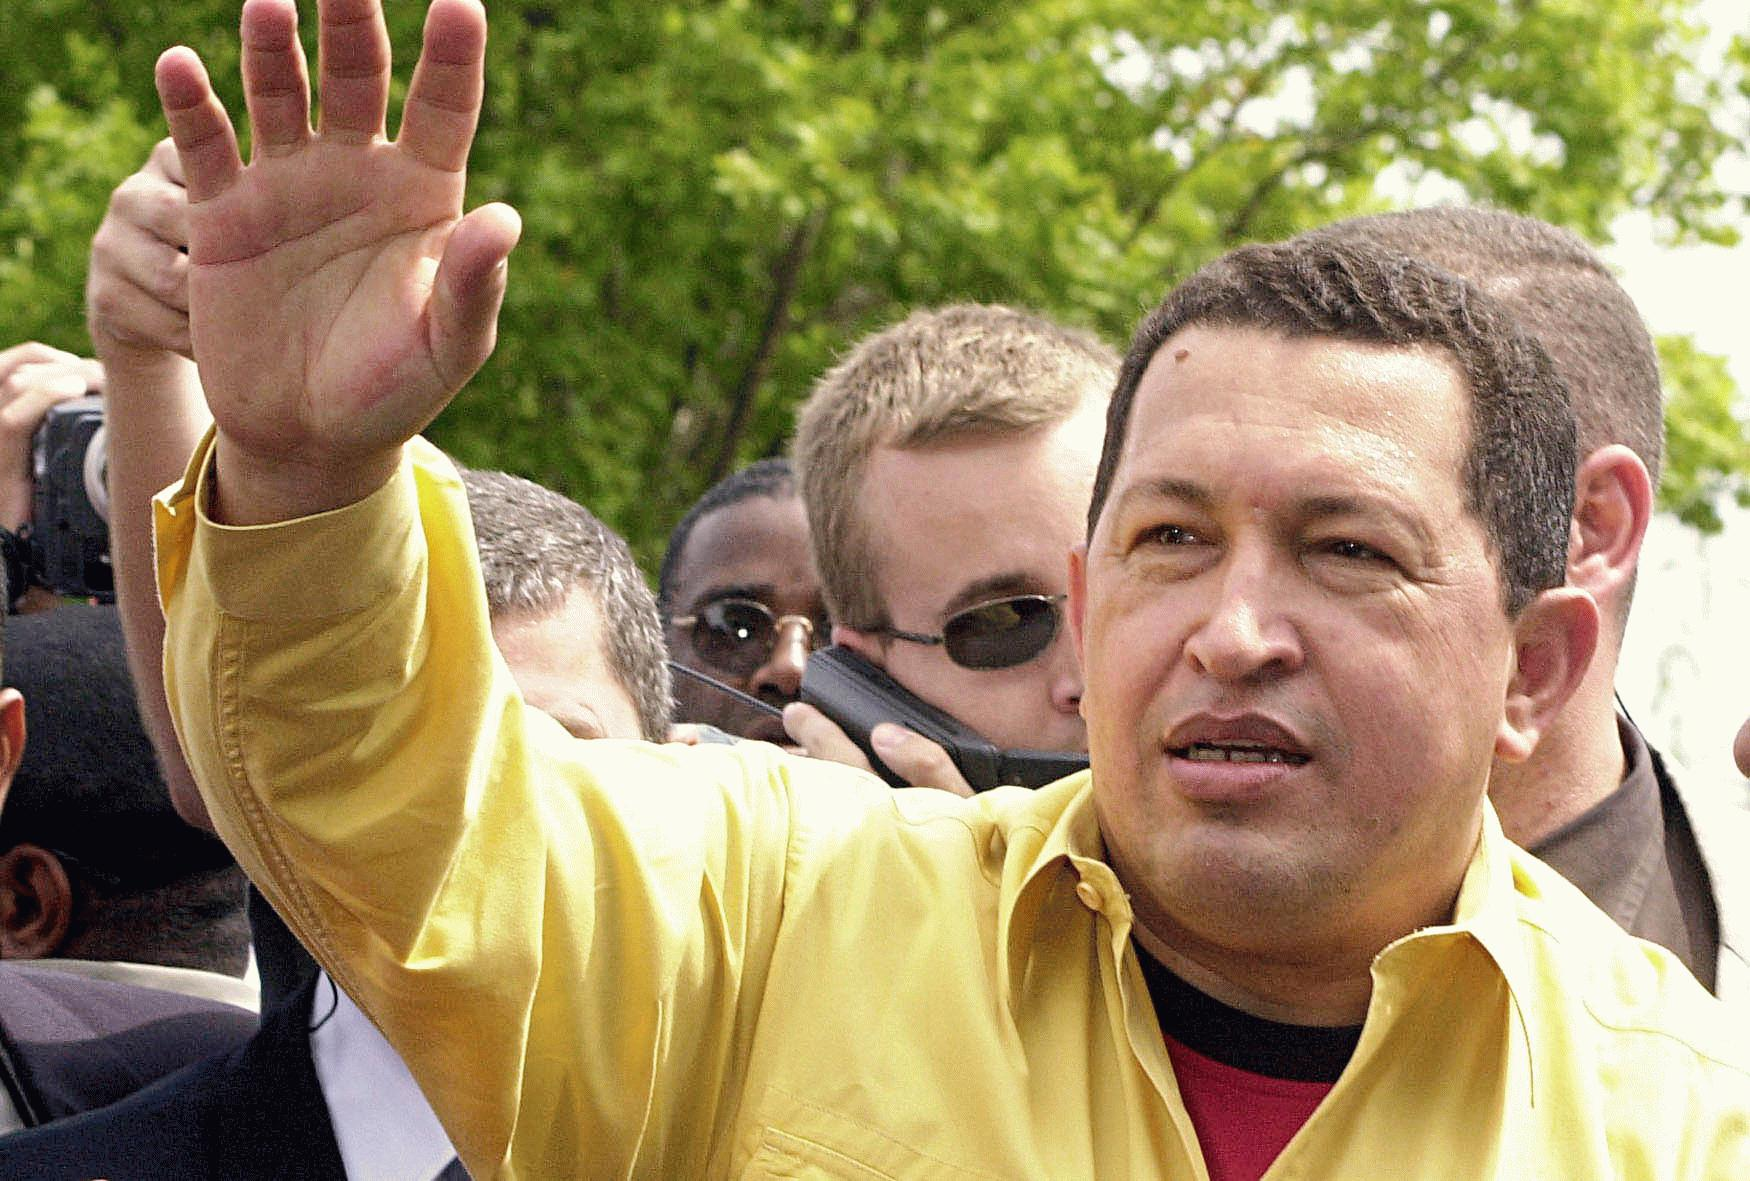 From cholera transmission to Chavez's Venezuela